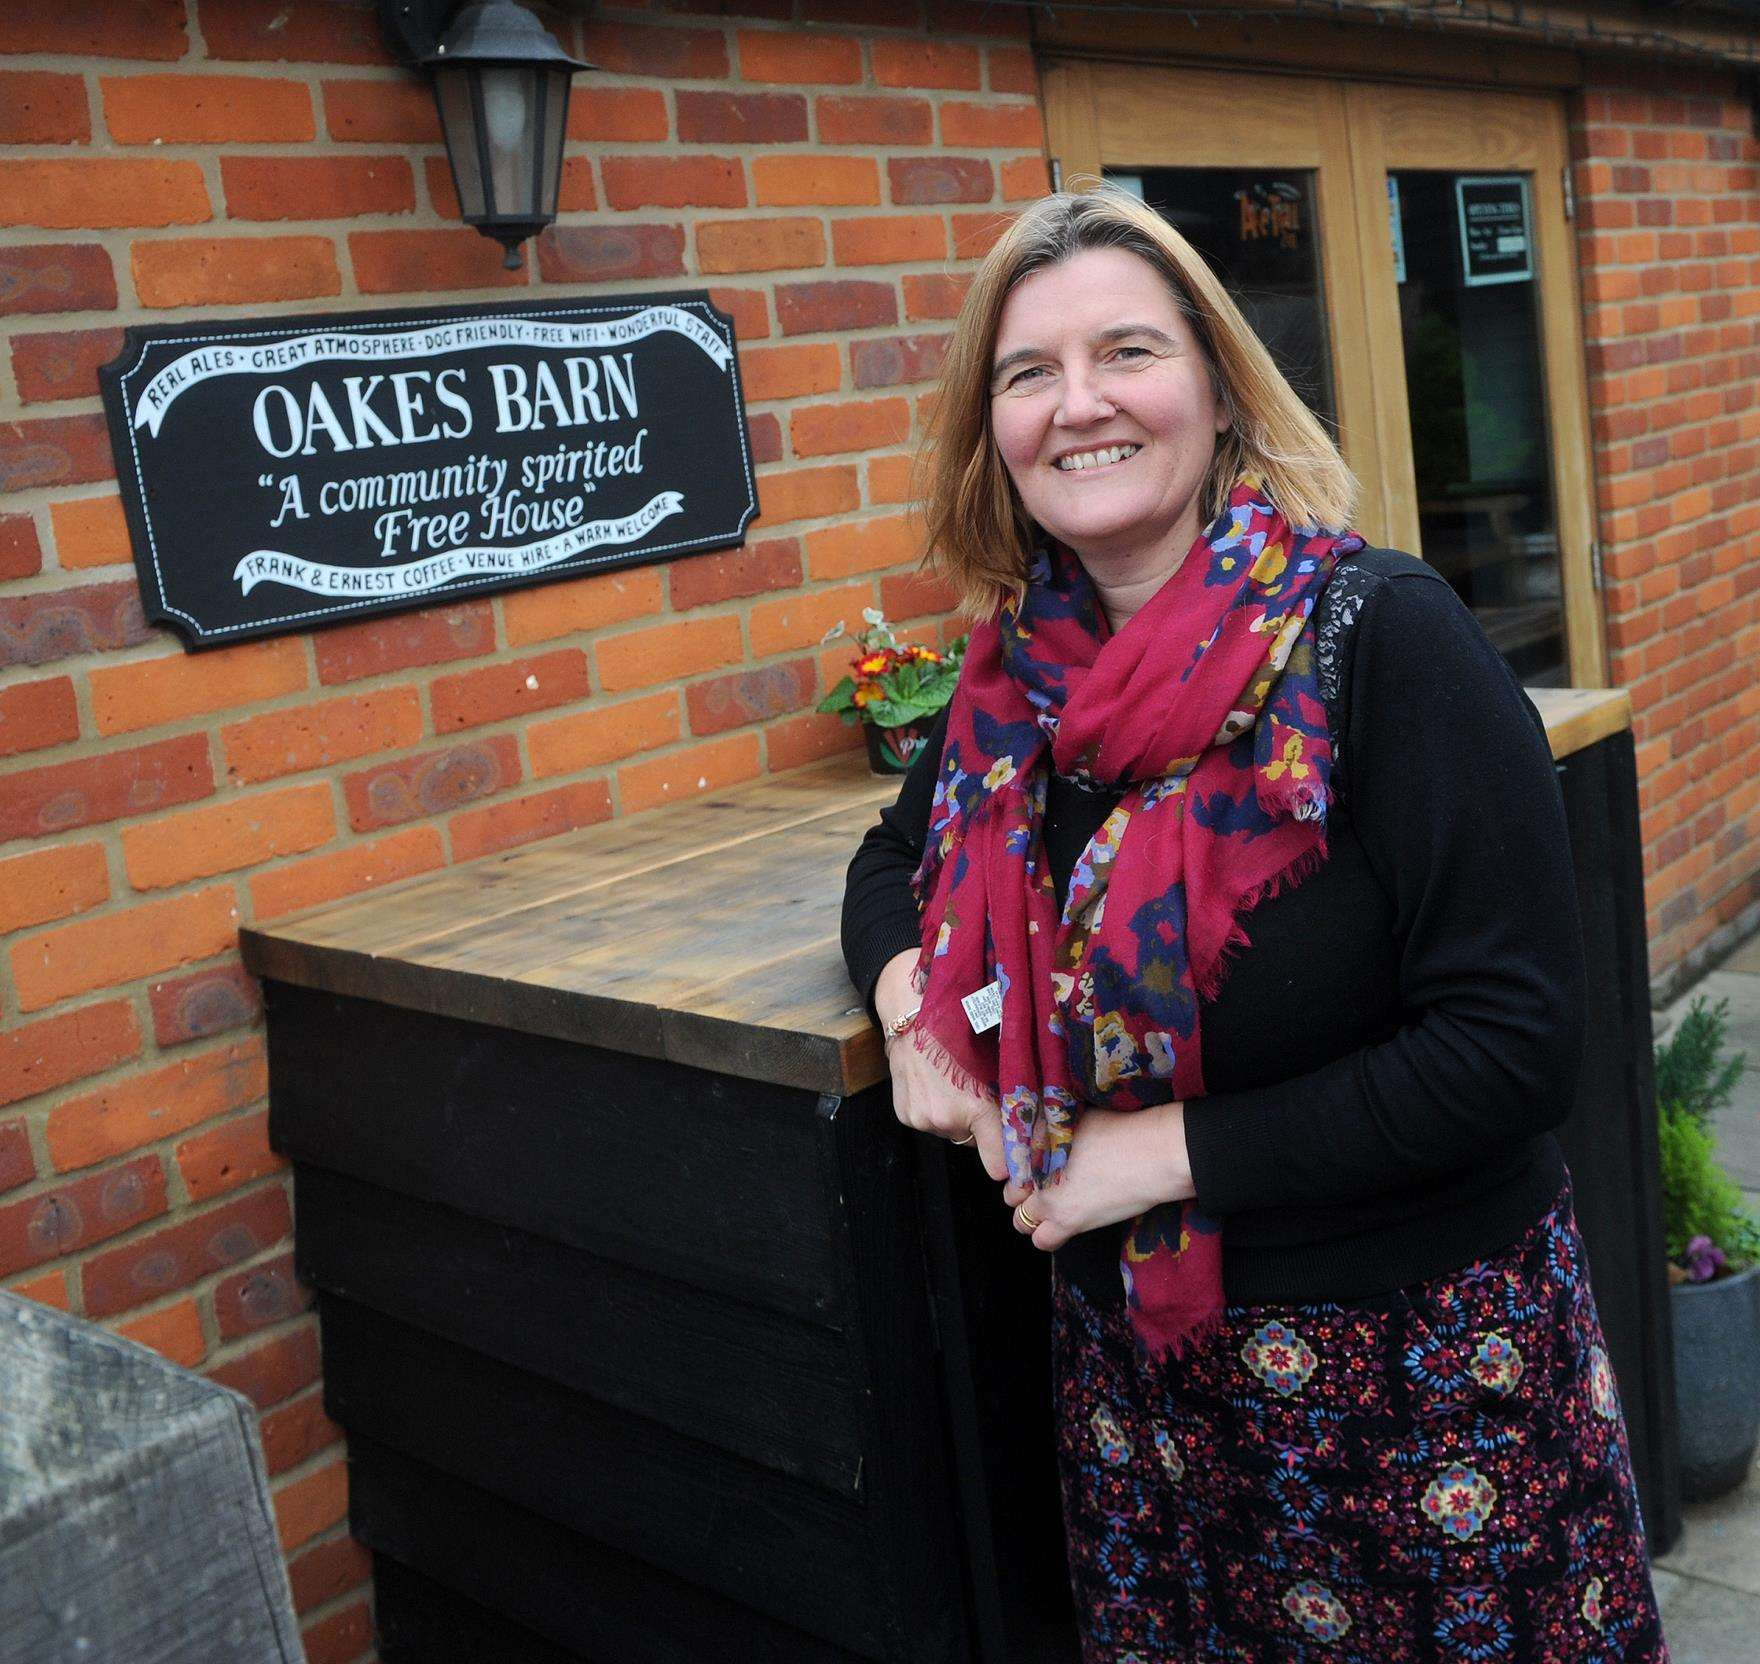 Heather Warren has been keen to cater for all interests at Oakes Barn, the pub she owns in St Andrew's Street South